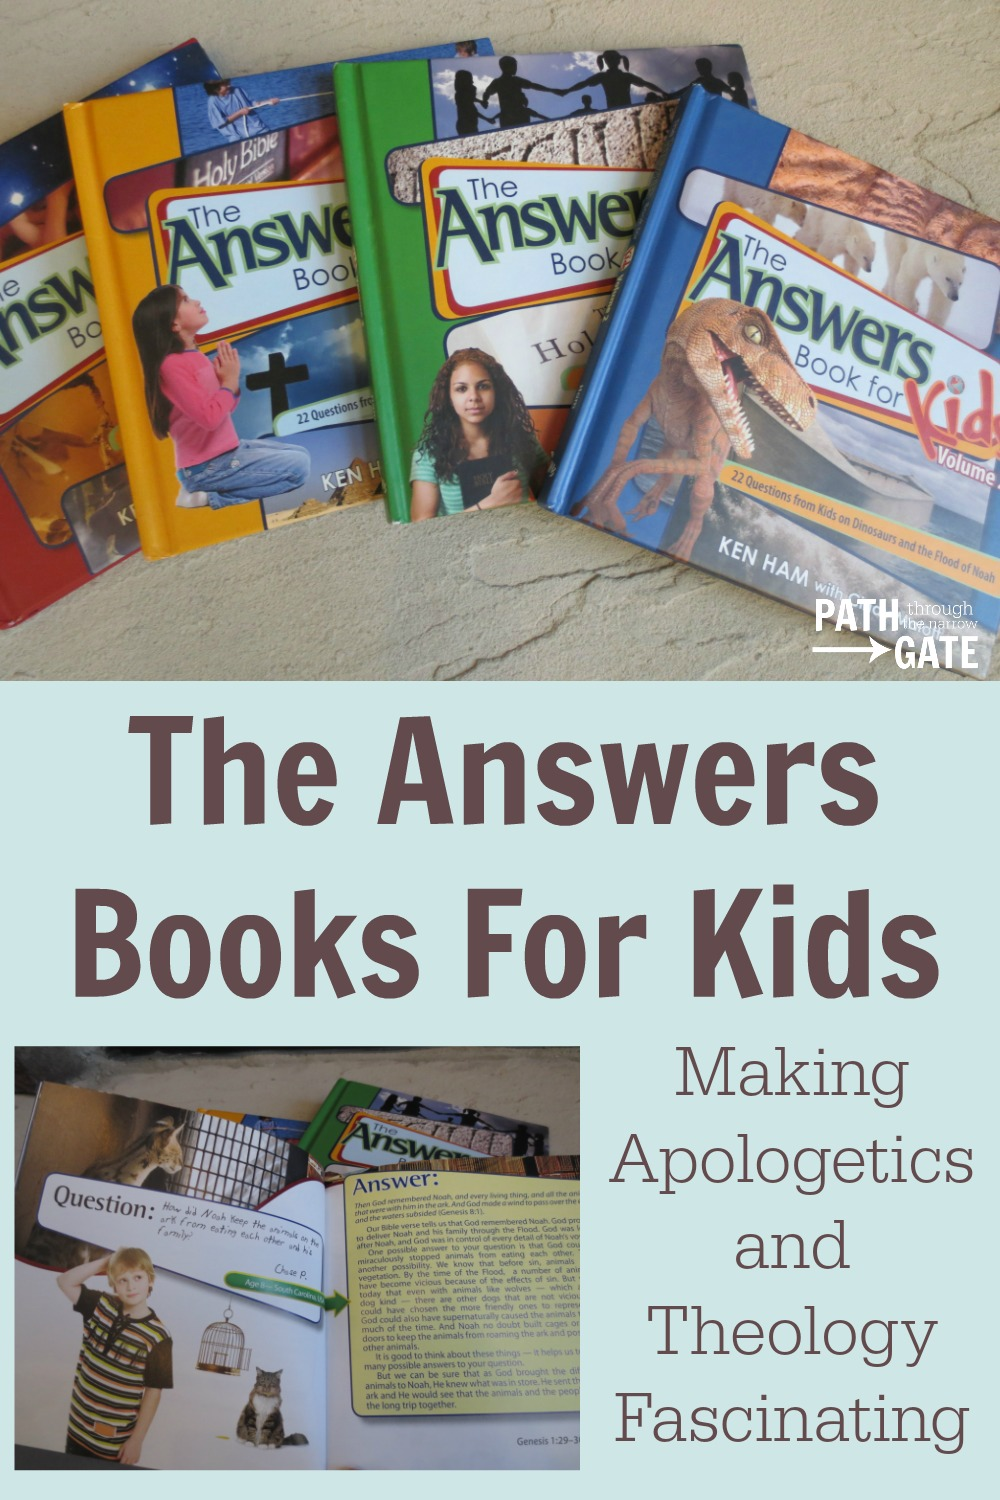 Answers Books for Kids pin 1